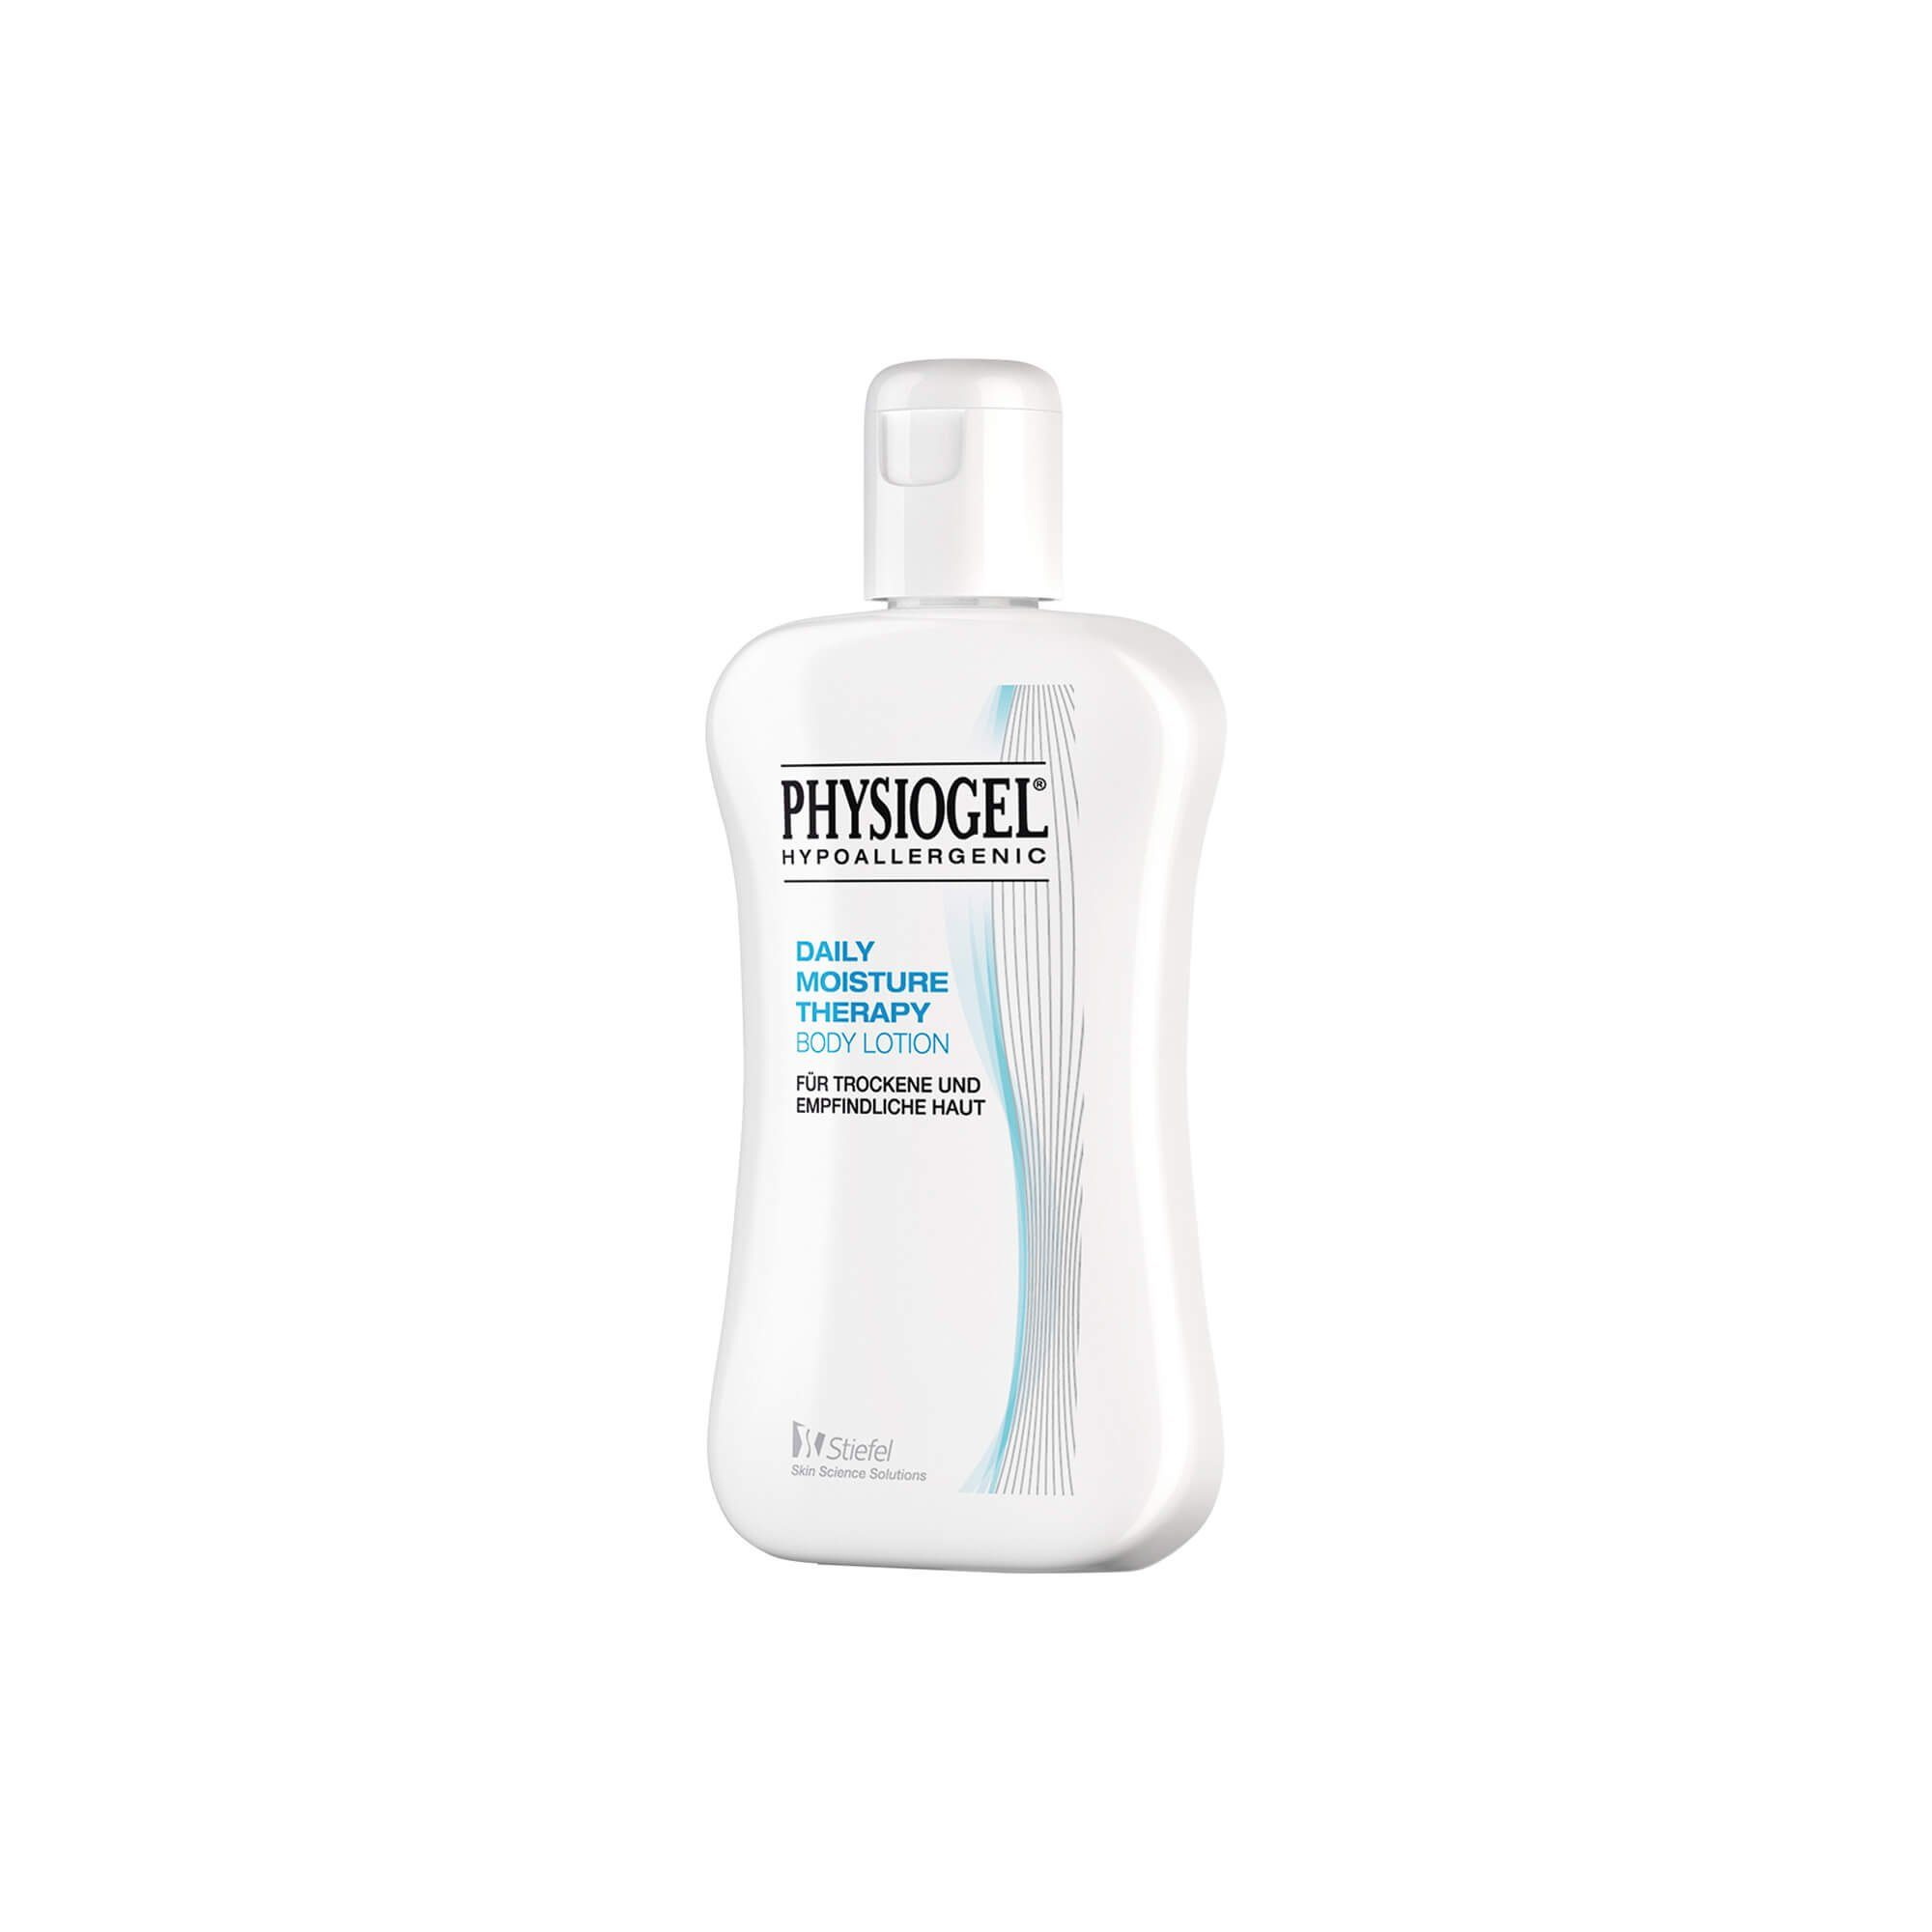 Physiogel Daily Moisture Therapy Body Lotion , 200 ml